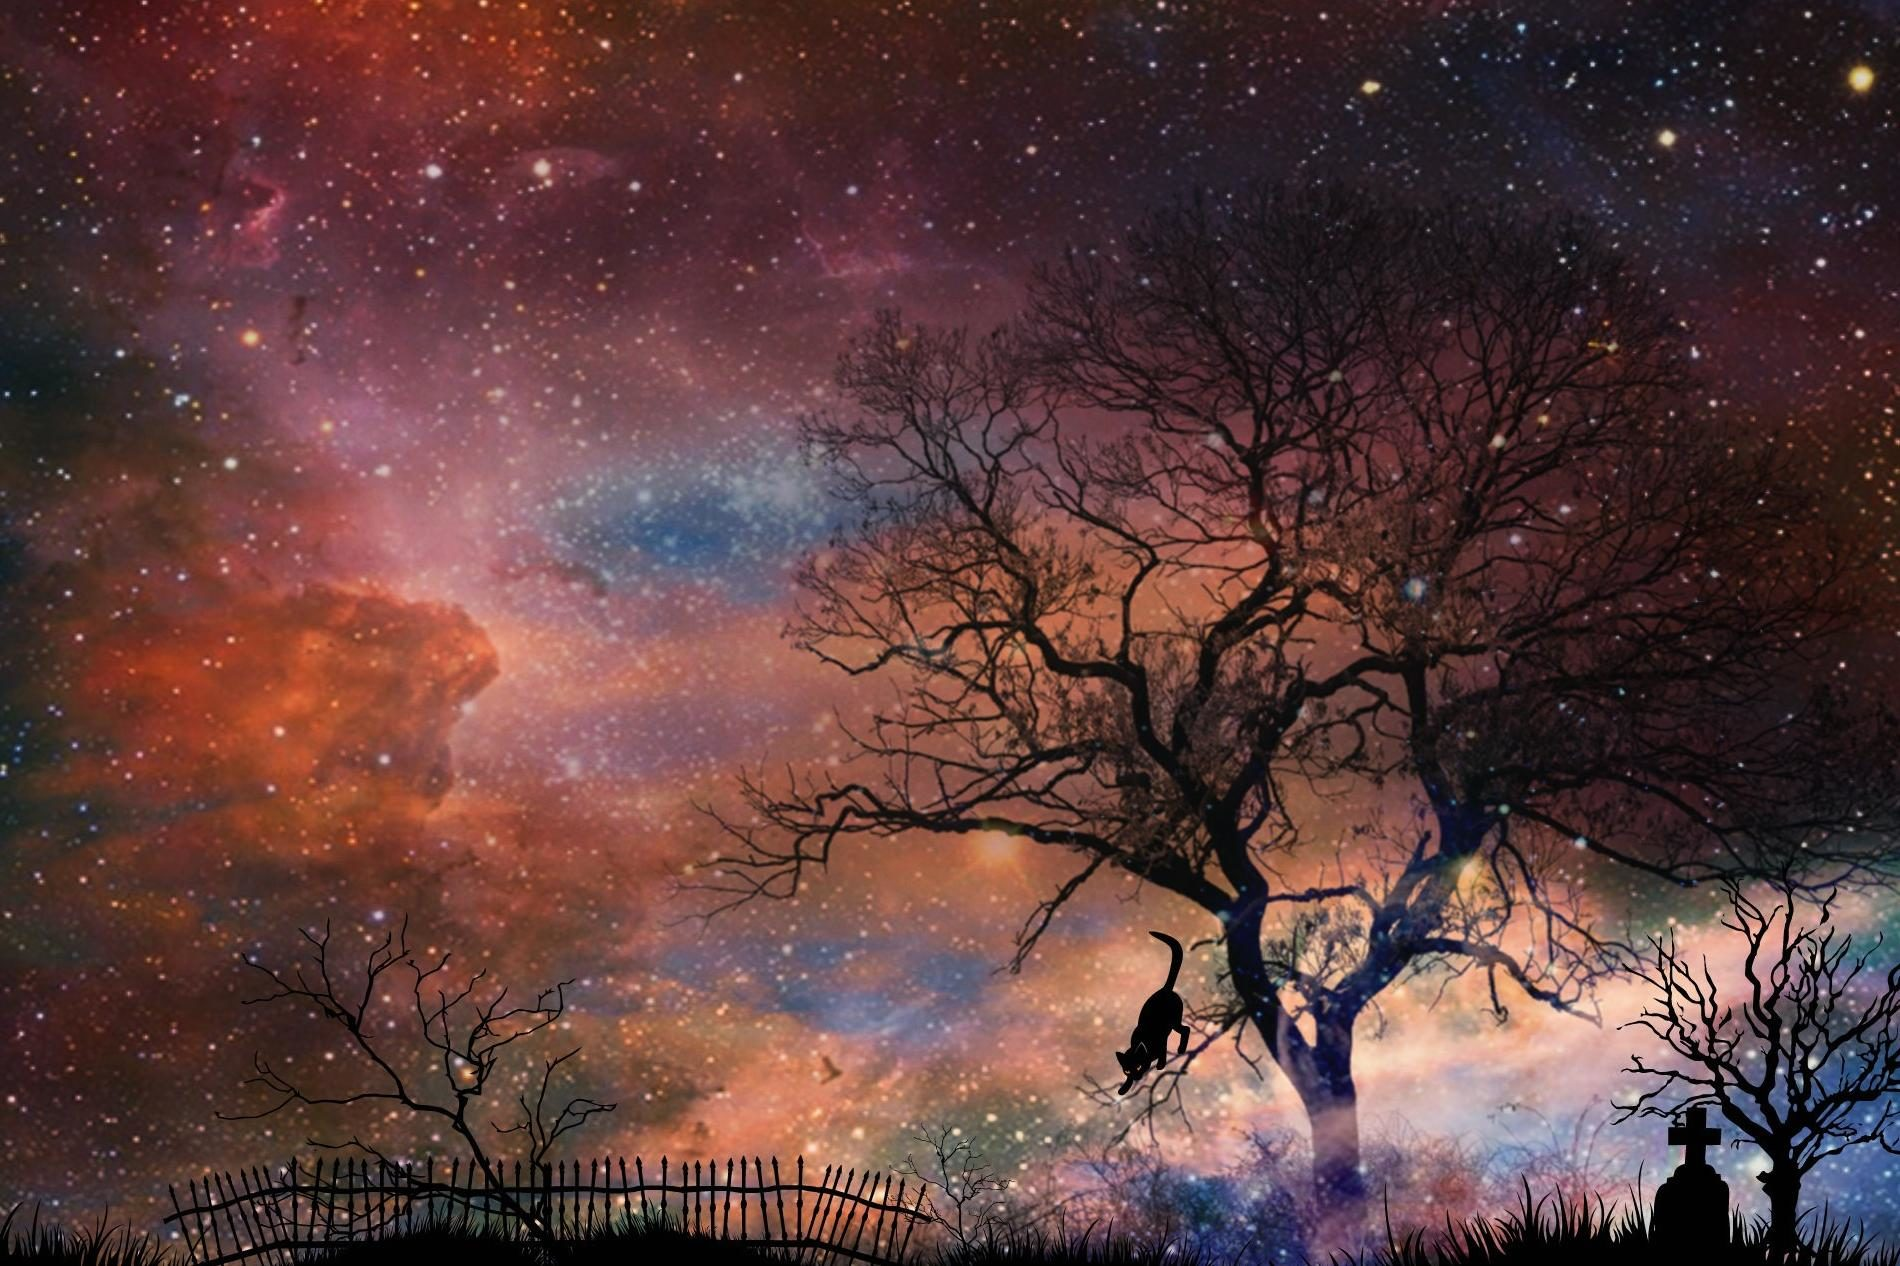 Art Design Wallpaper Hd Free Picture Night Photomontage Mystery Fantasy